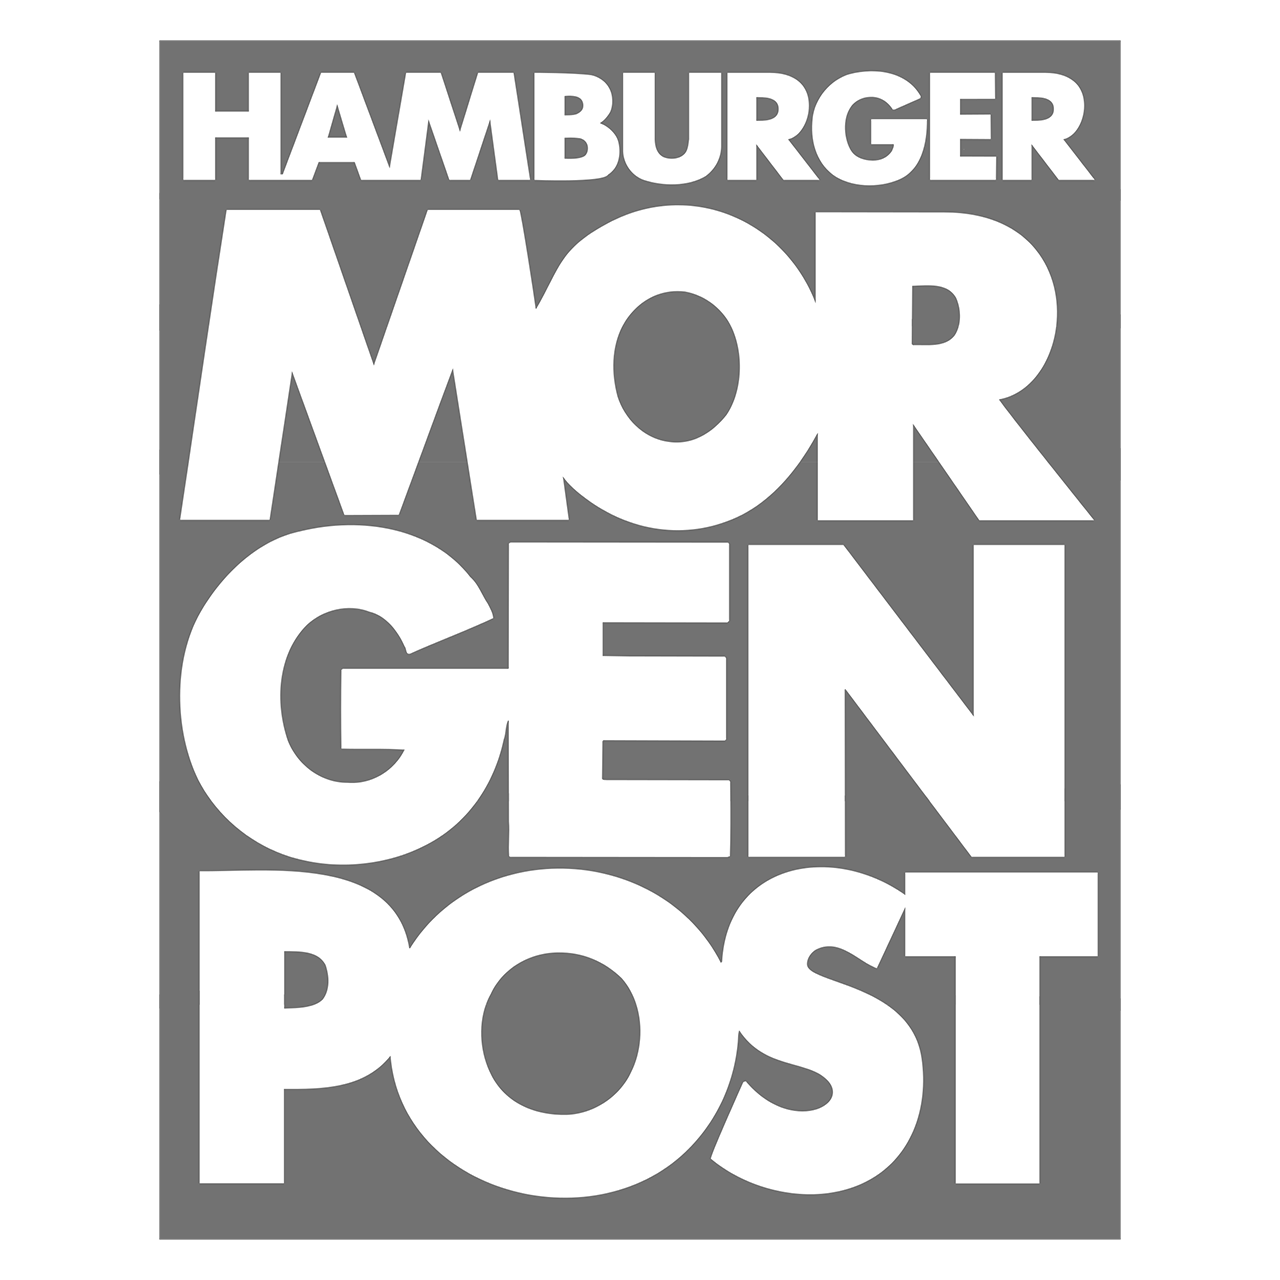 Logo Hamburger Morgenpost, black & white